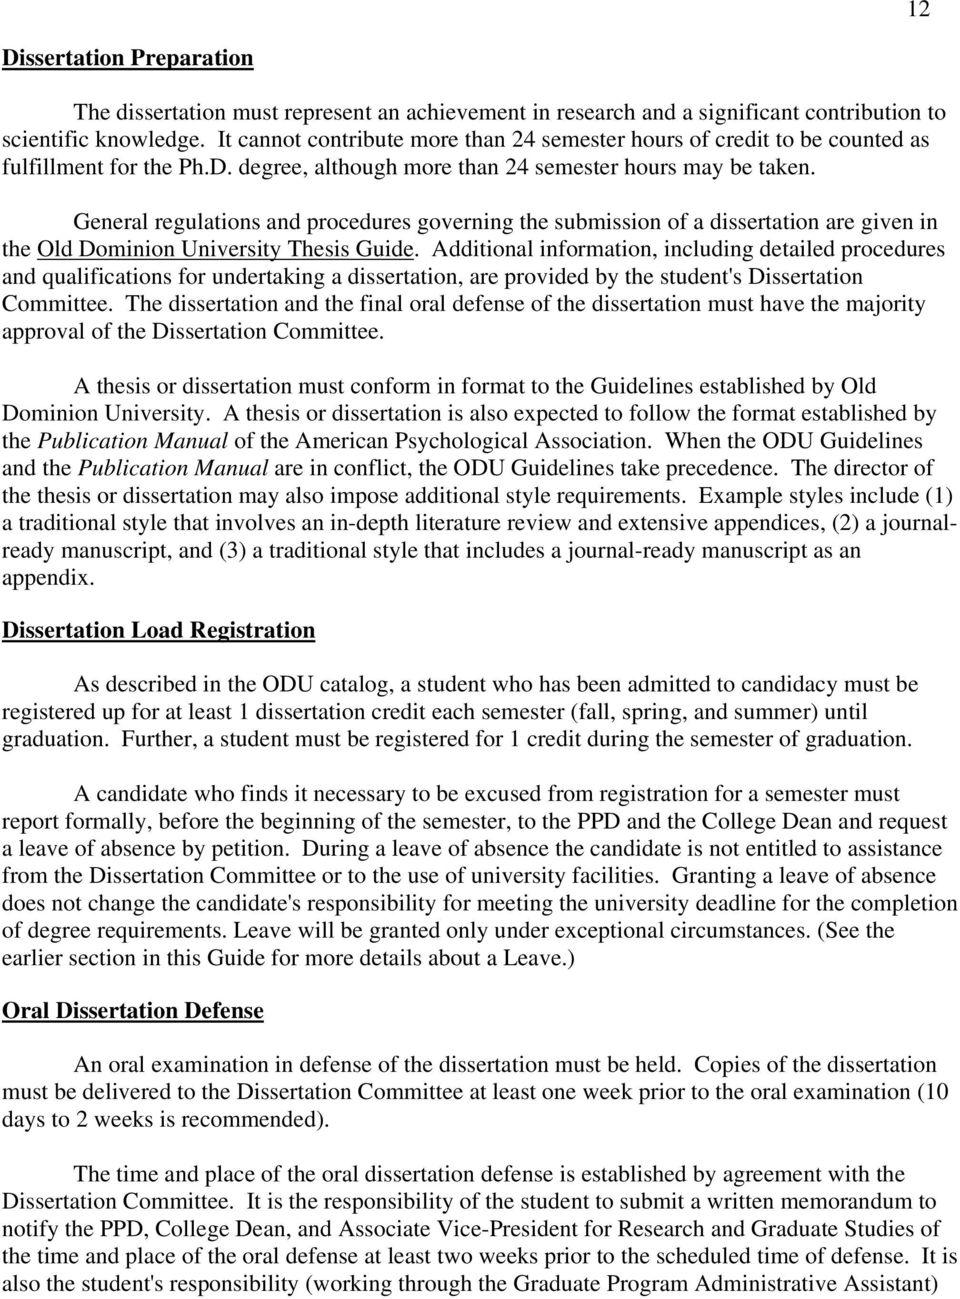 General regulations and procedures governing the submission of a dissertation are given in the Old Dominion University Thesis Guide.